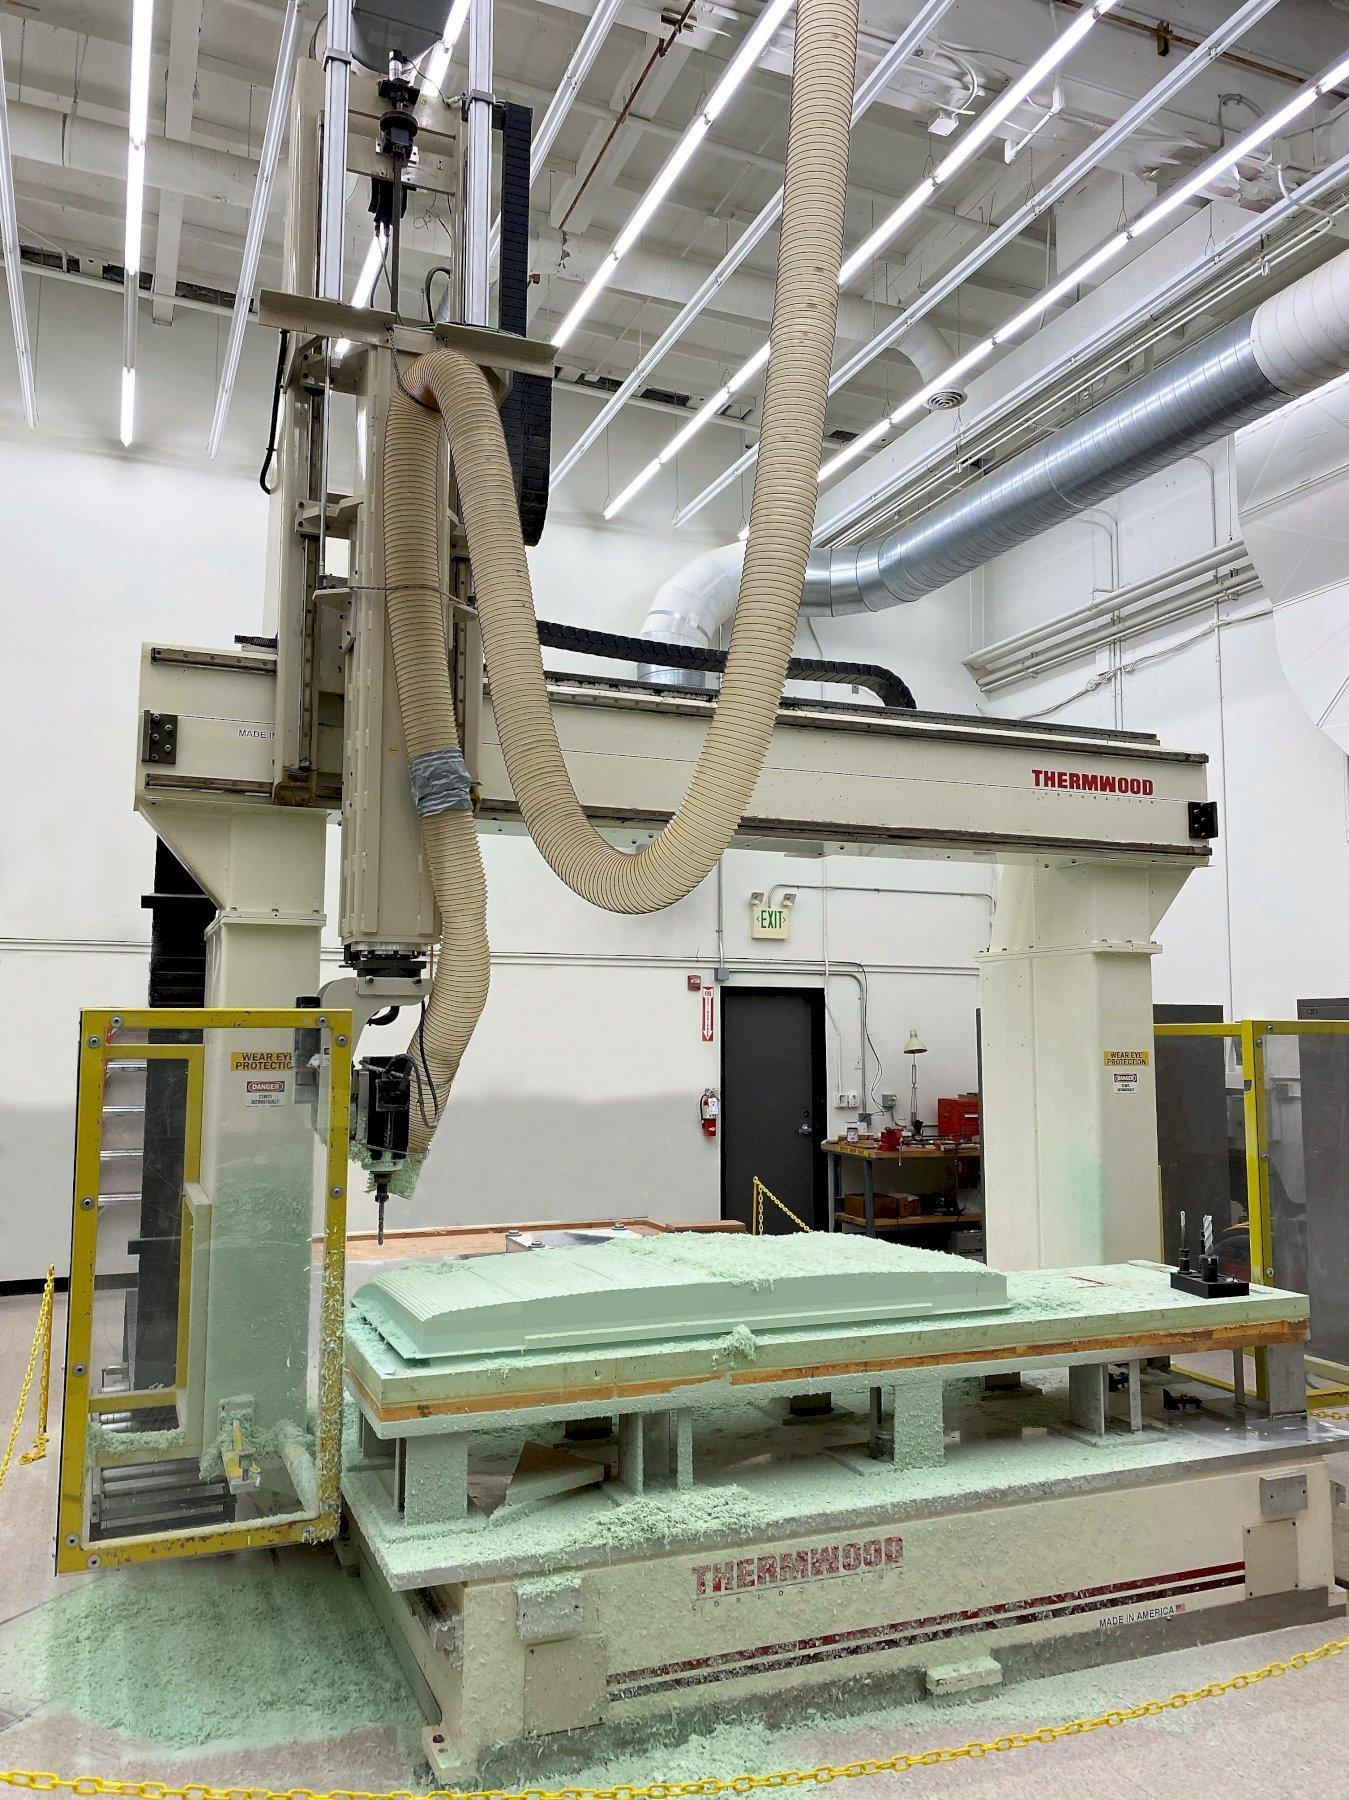 Thermwood Multipurpose 70 5-Axis CNC Router 2007 with: 91000 Gen II Control with Windows XP, Impact Resistant Head, Auto Tool Length Sensor, and Upgraded 9.6-HP HSK Tool Change Spindle.